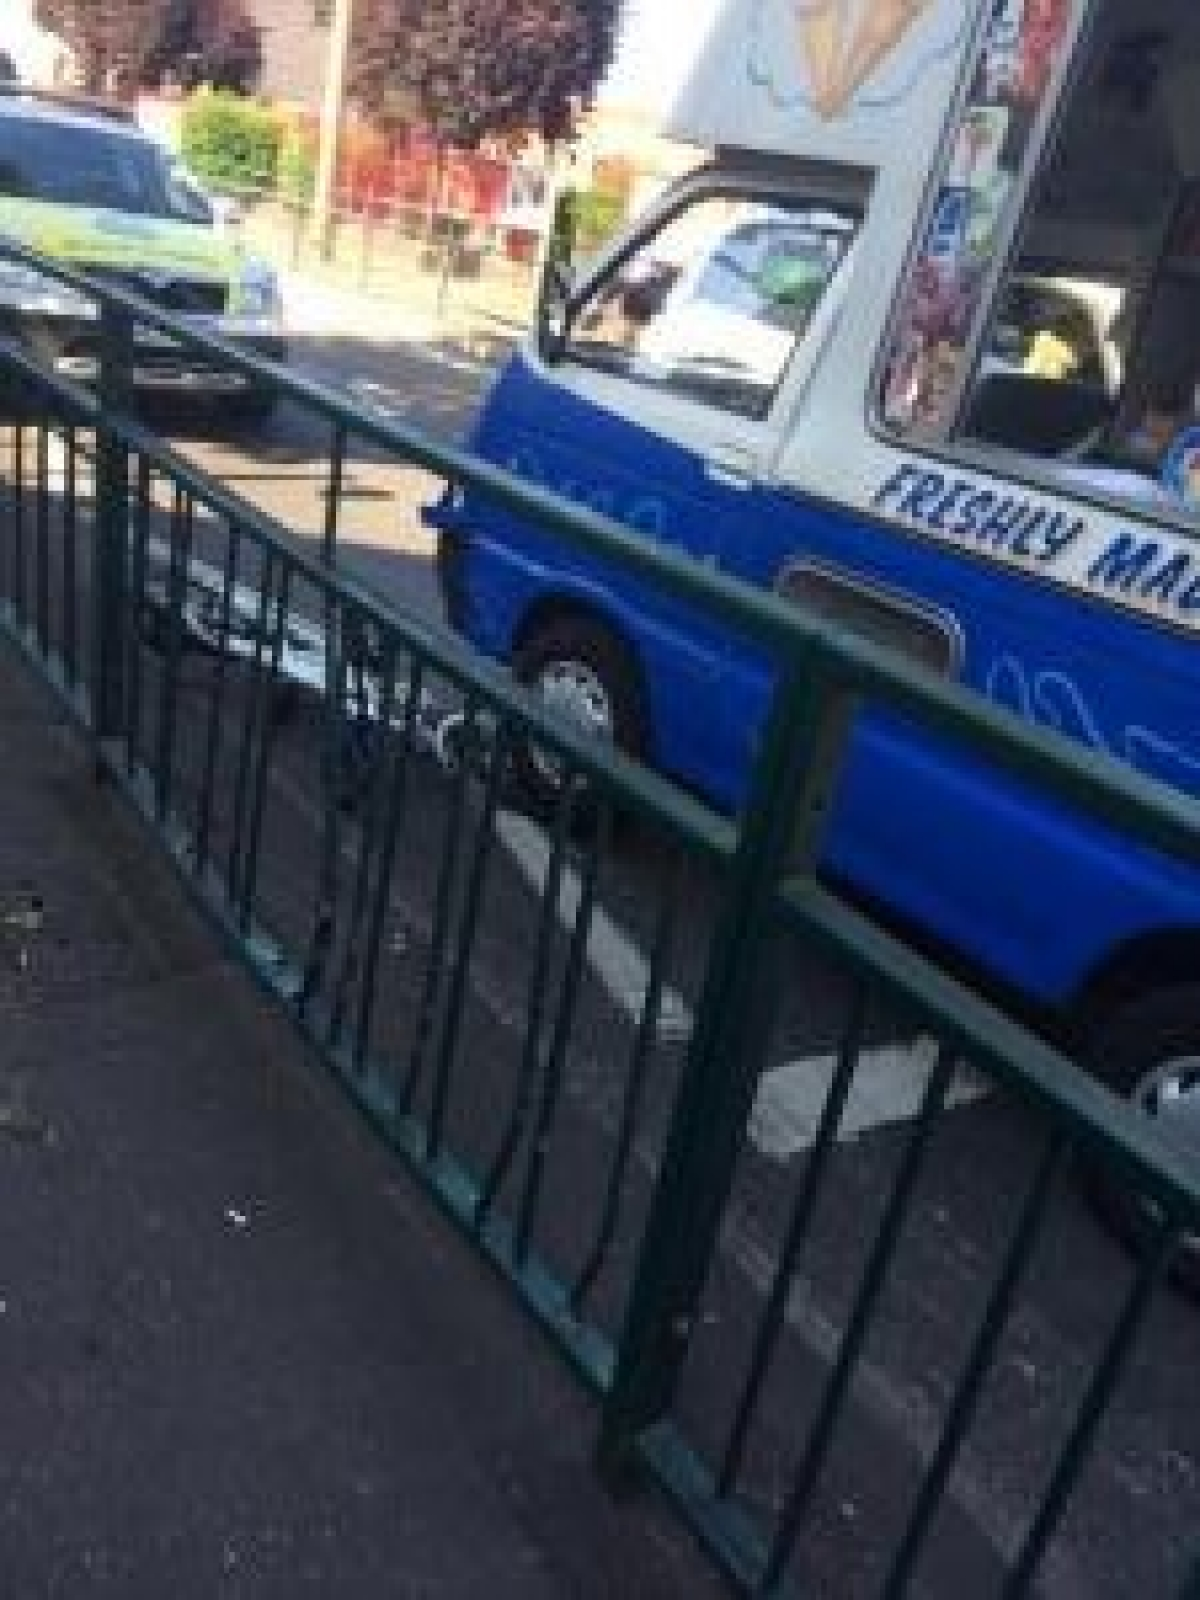 Teenage boy taken to hospital after being hit by ice cream van